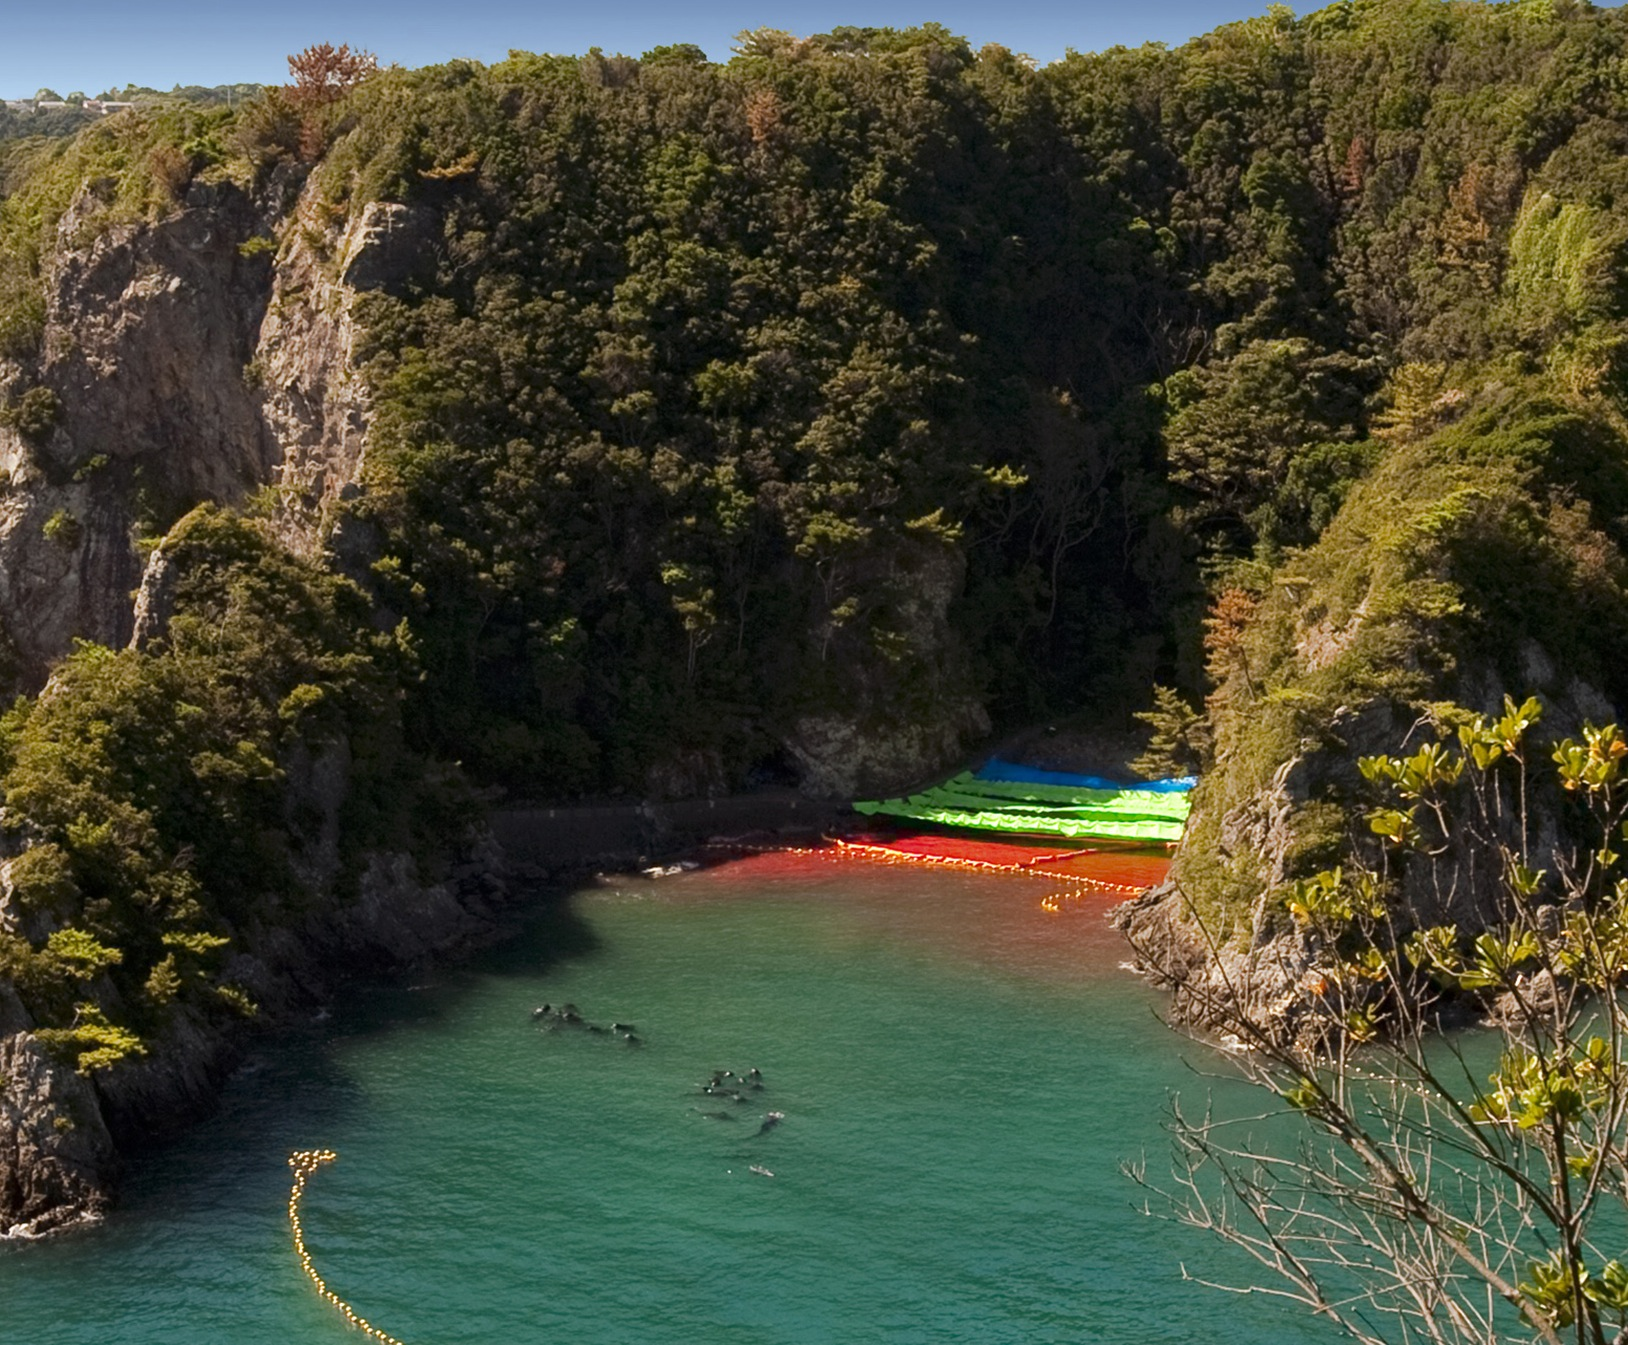 Taiji Given Green Light to Kill More Dolphins